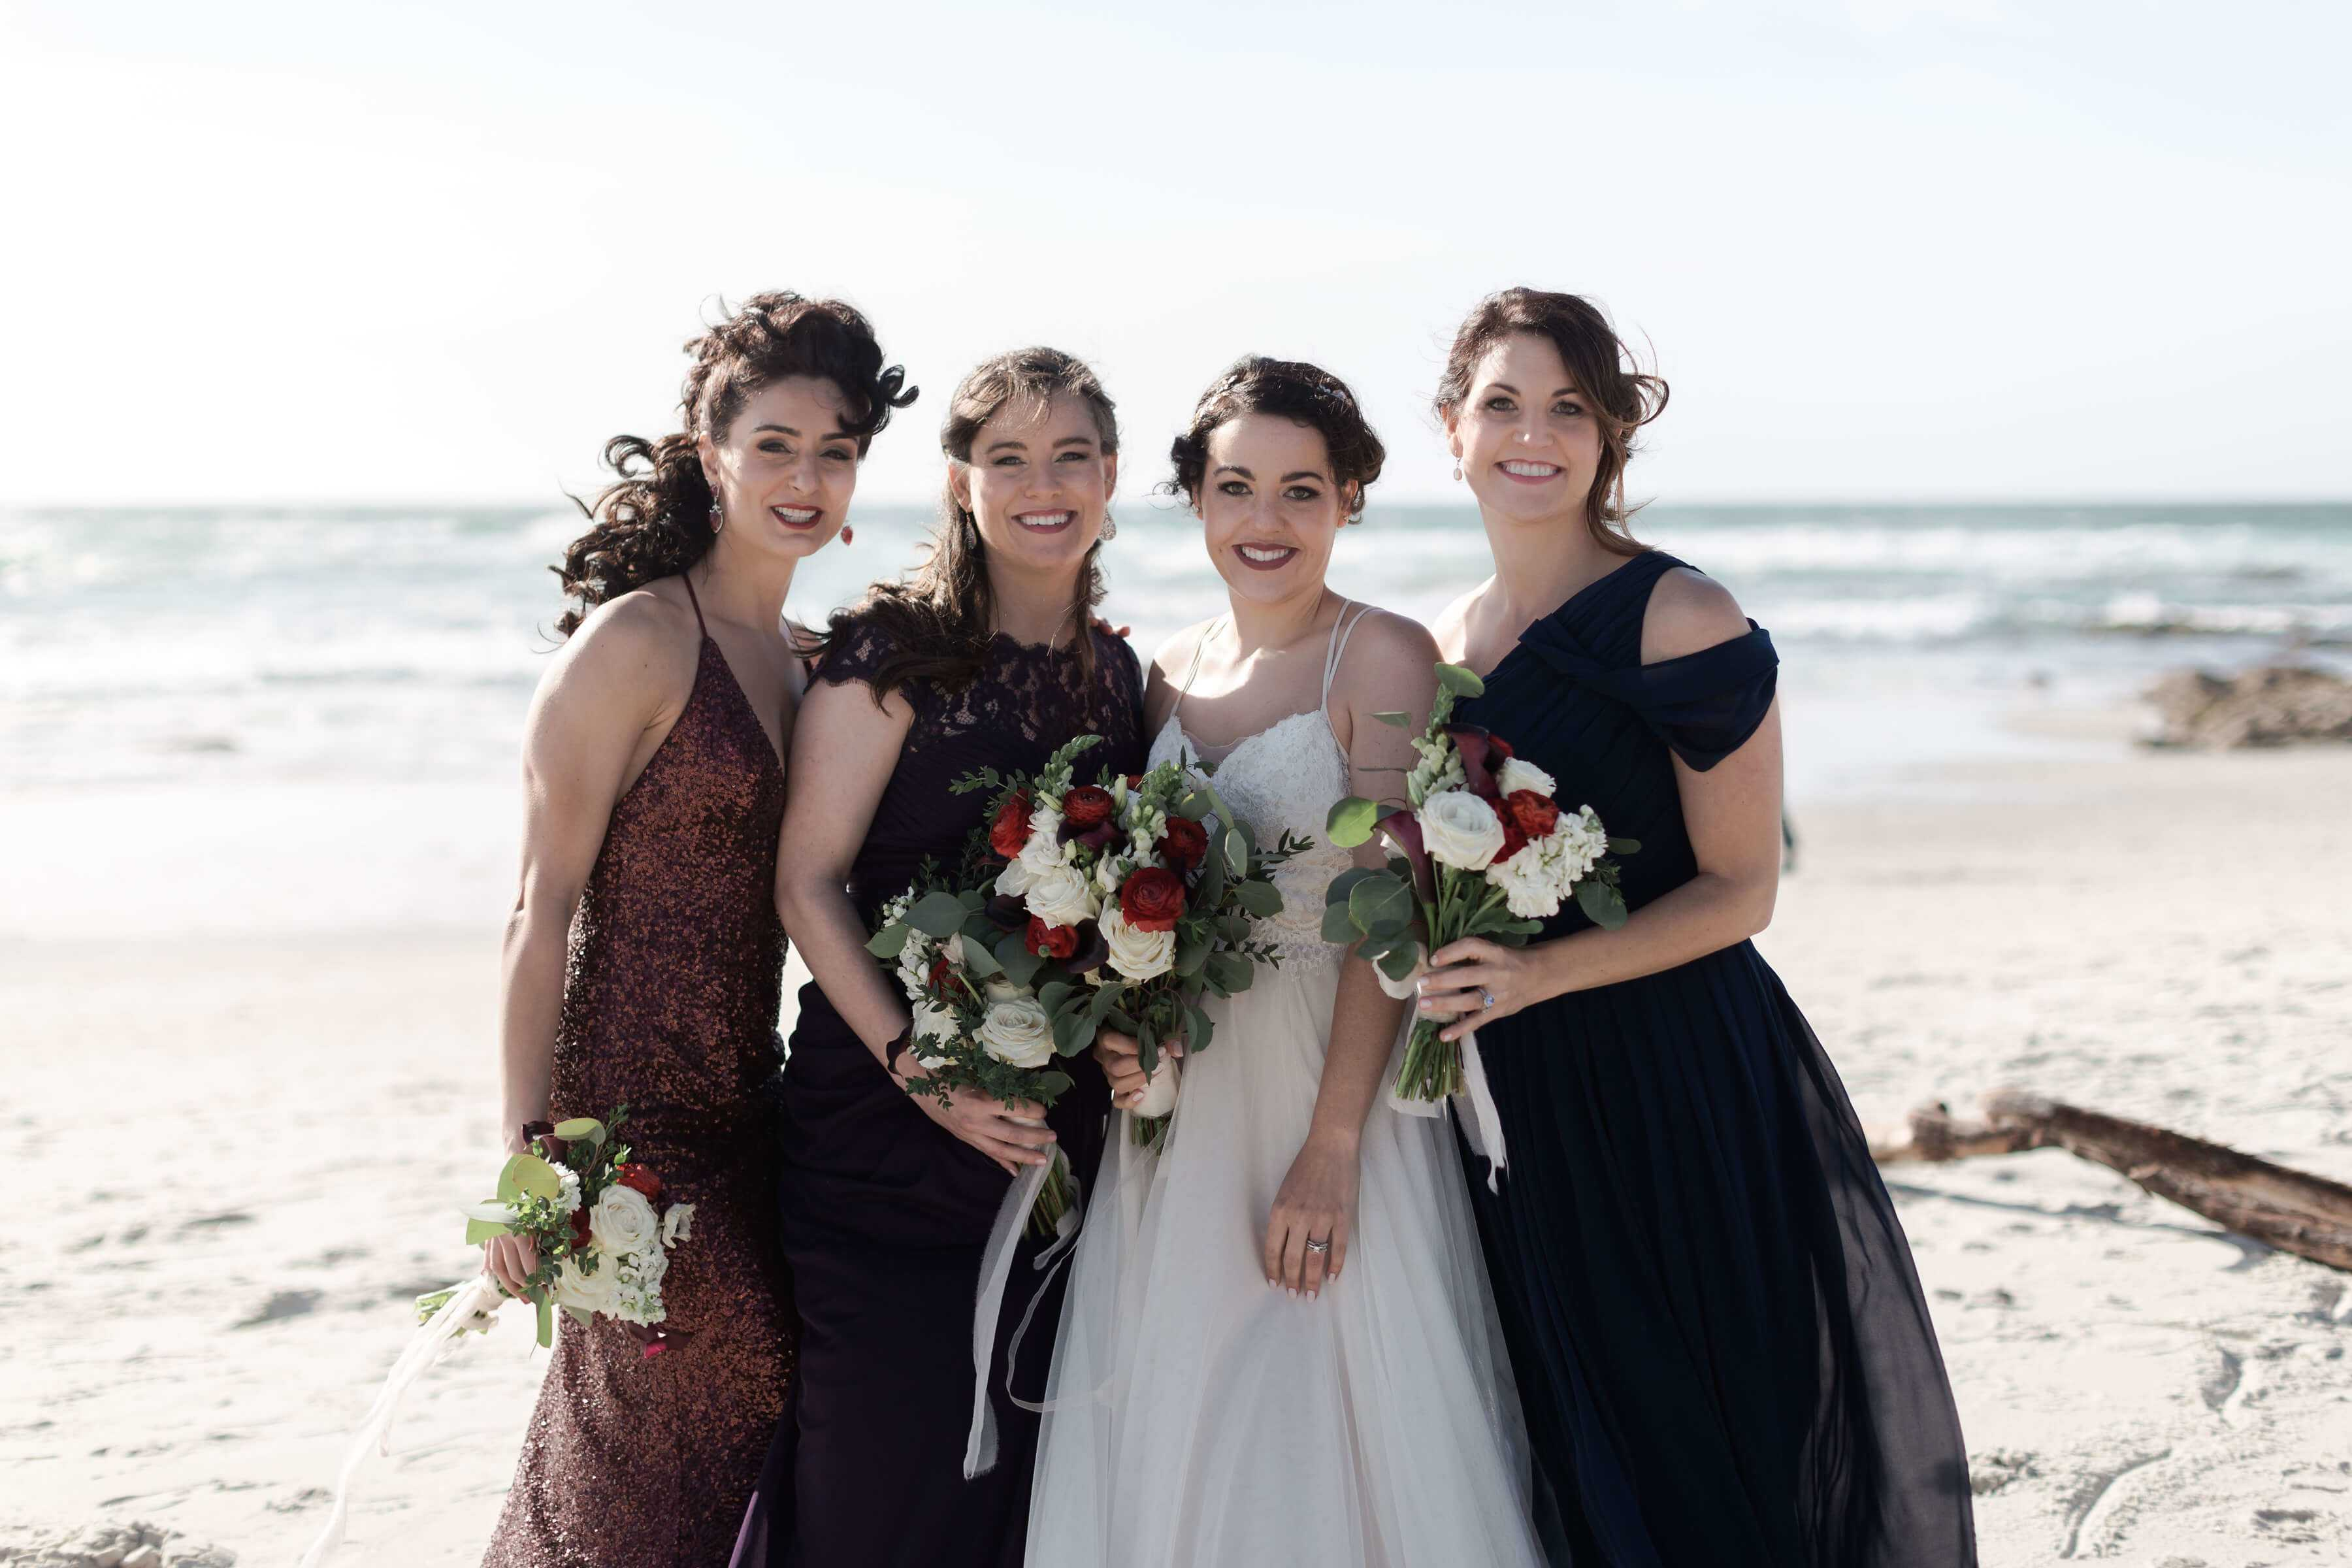 Bride And Her Bridesmaids On A Beach Holding Bouquets